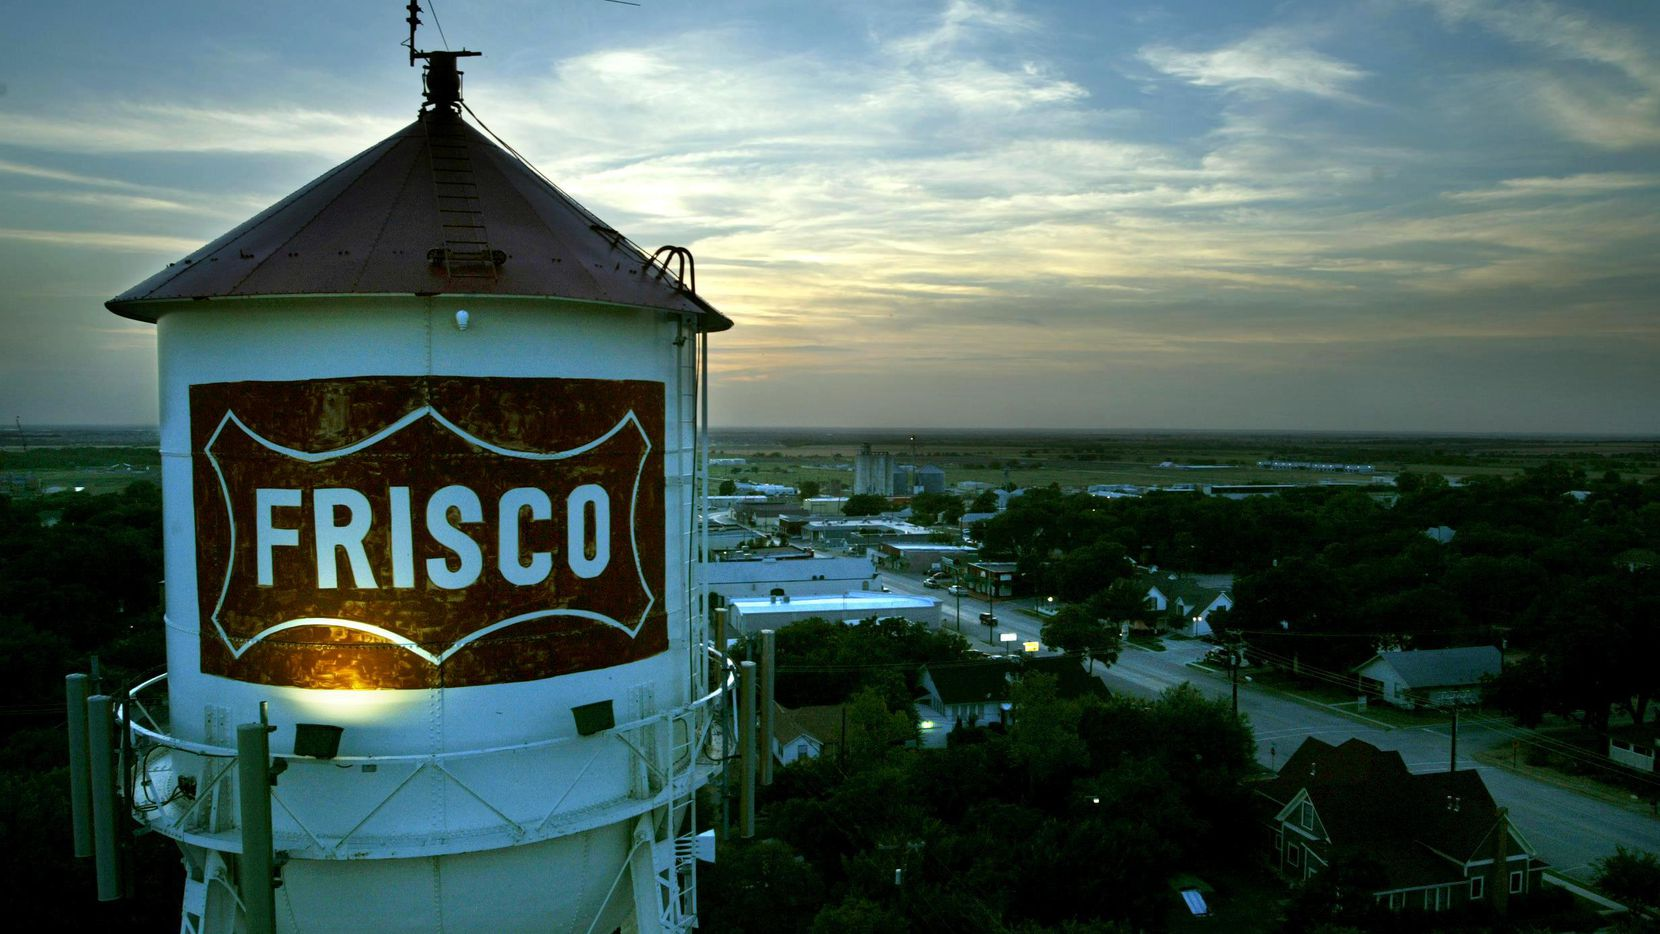 Frisco was rated the most recession proof city in the country.